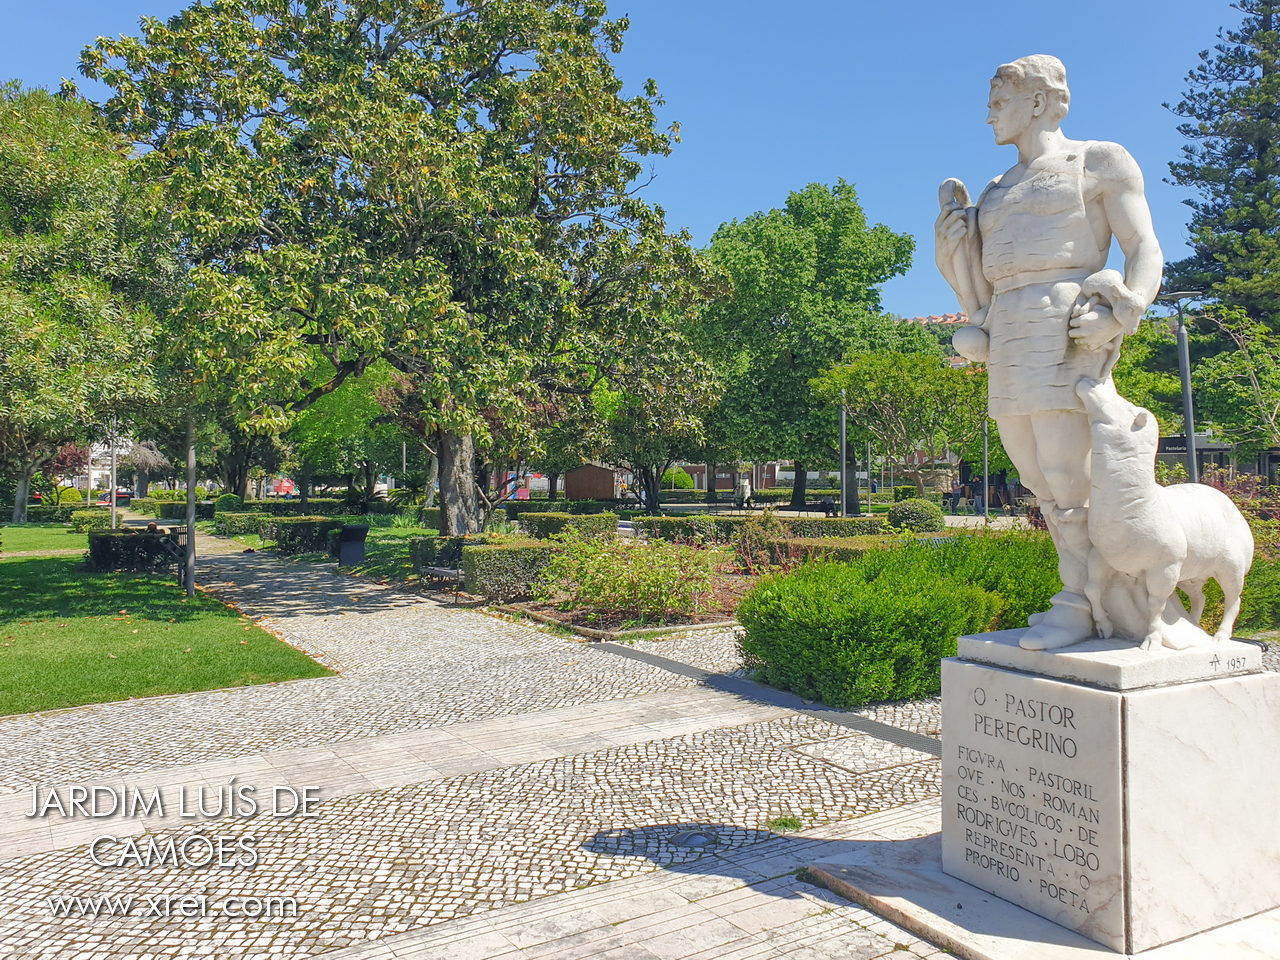 Jardim Luís de Camões by the river Lis in Leiria, with the statue of the Shepherd Pilgrim with the sheep.